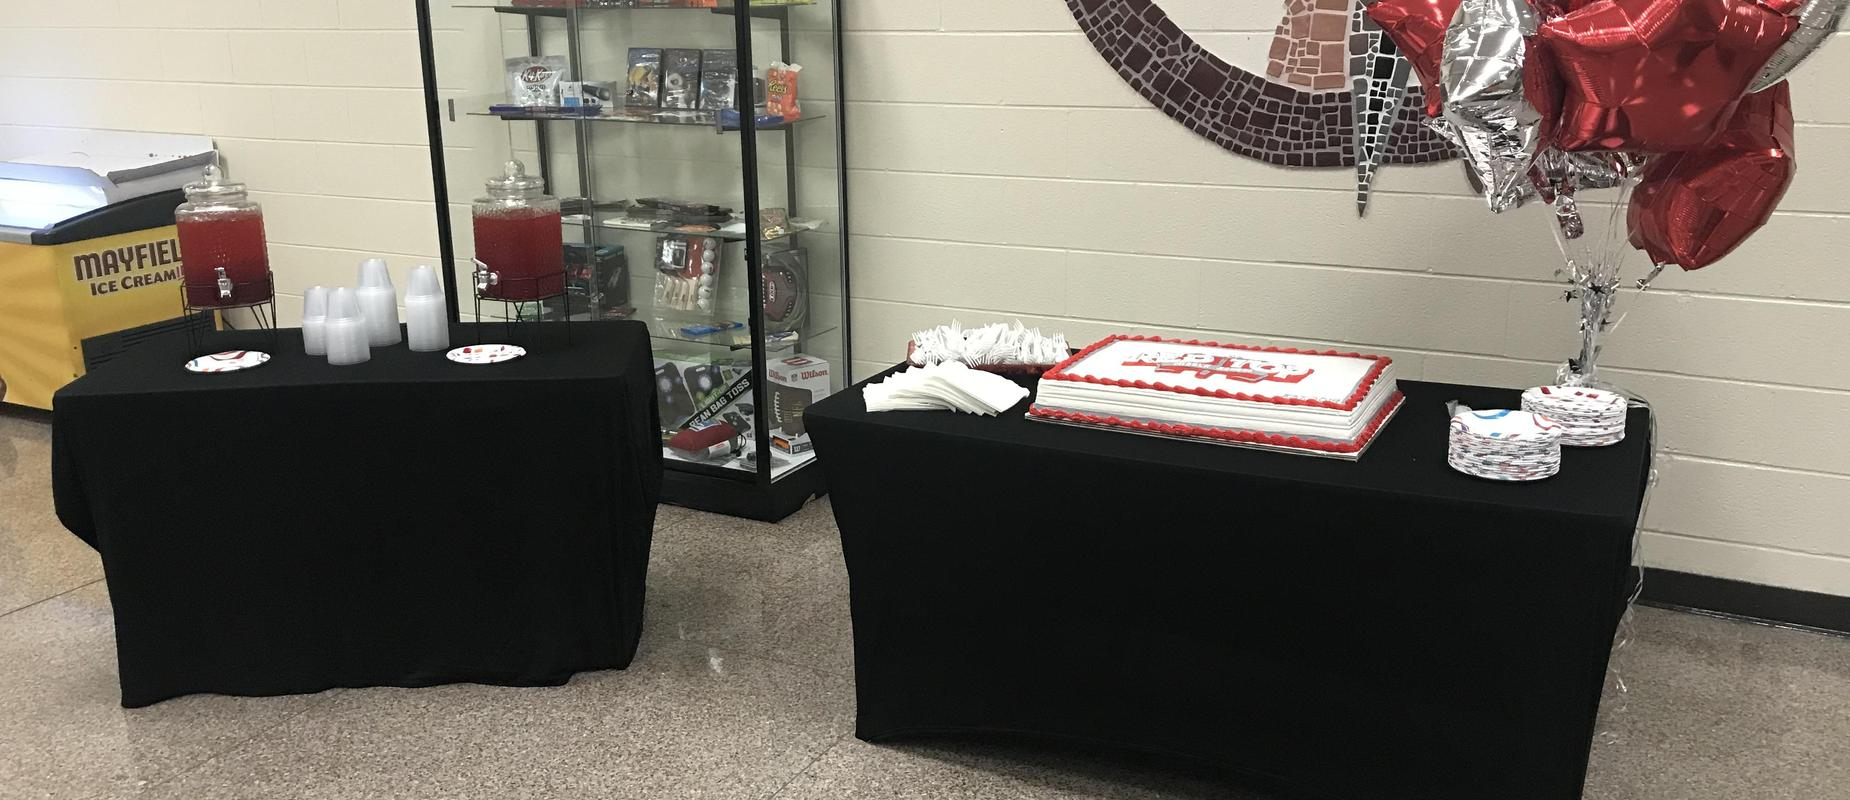 Ribbon Cutting Cake Table